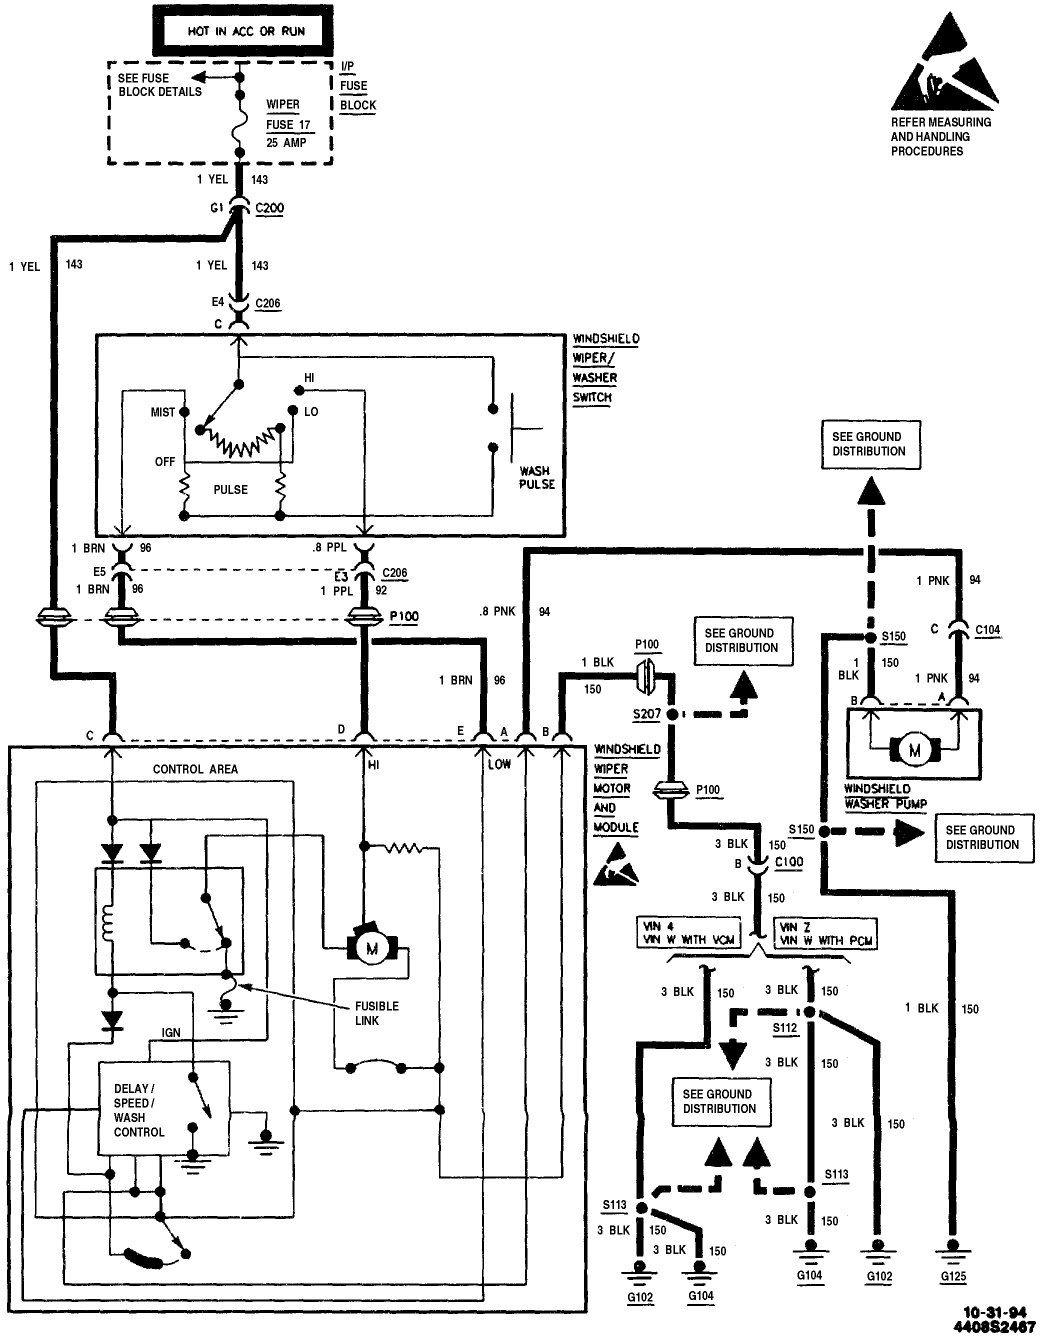 gm delay wiper motor wiring diagram